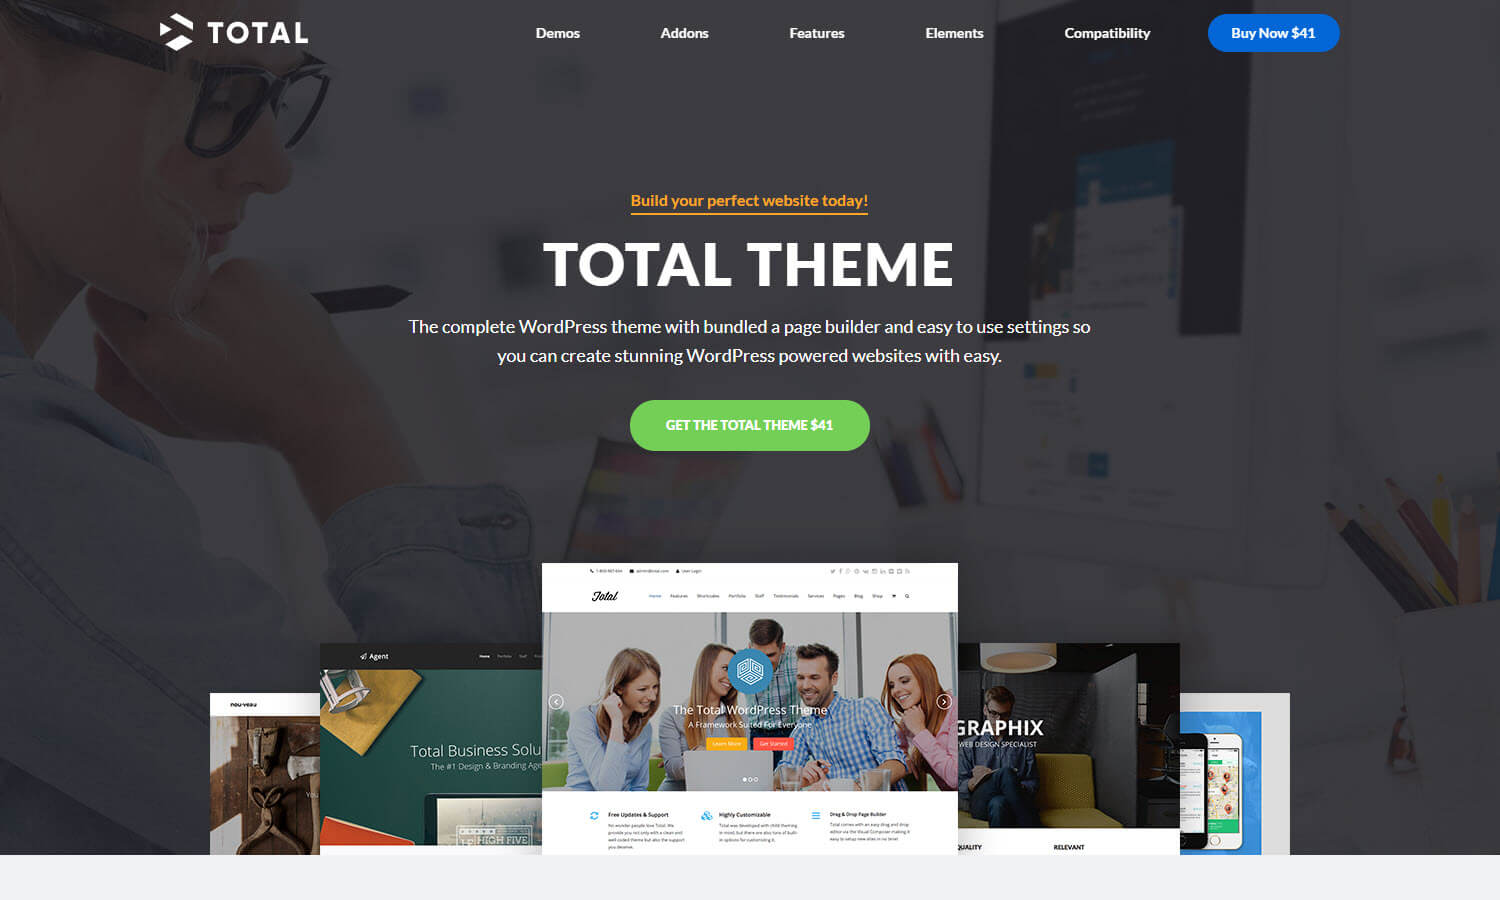 Total Theme screenshot